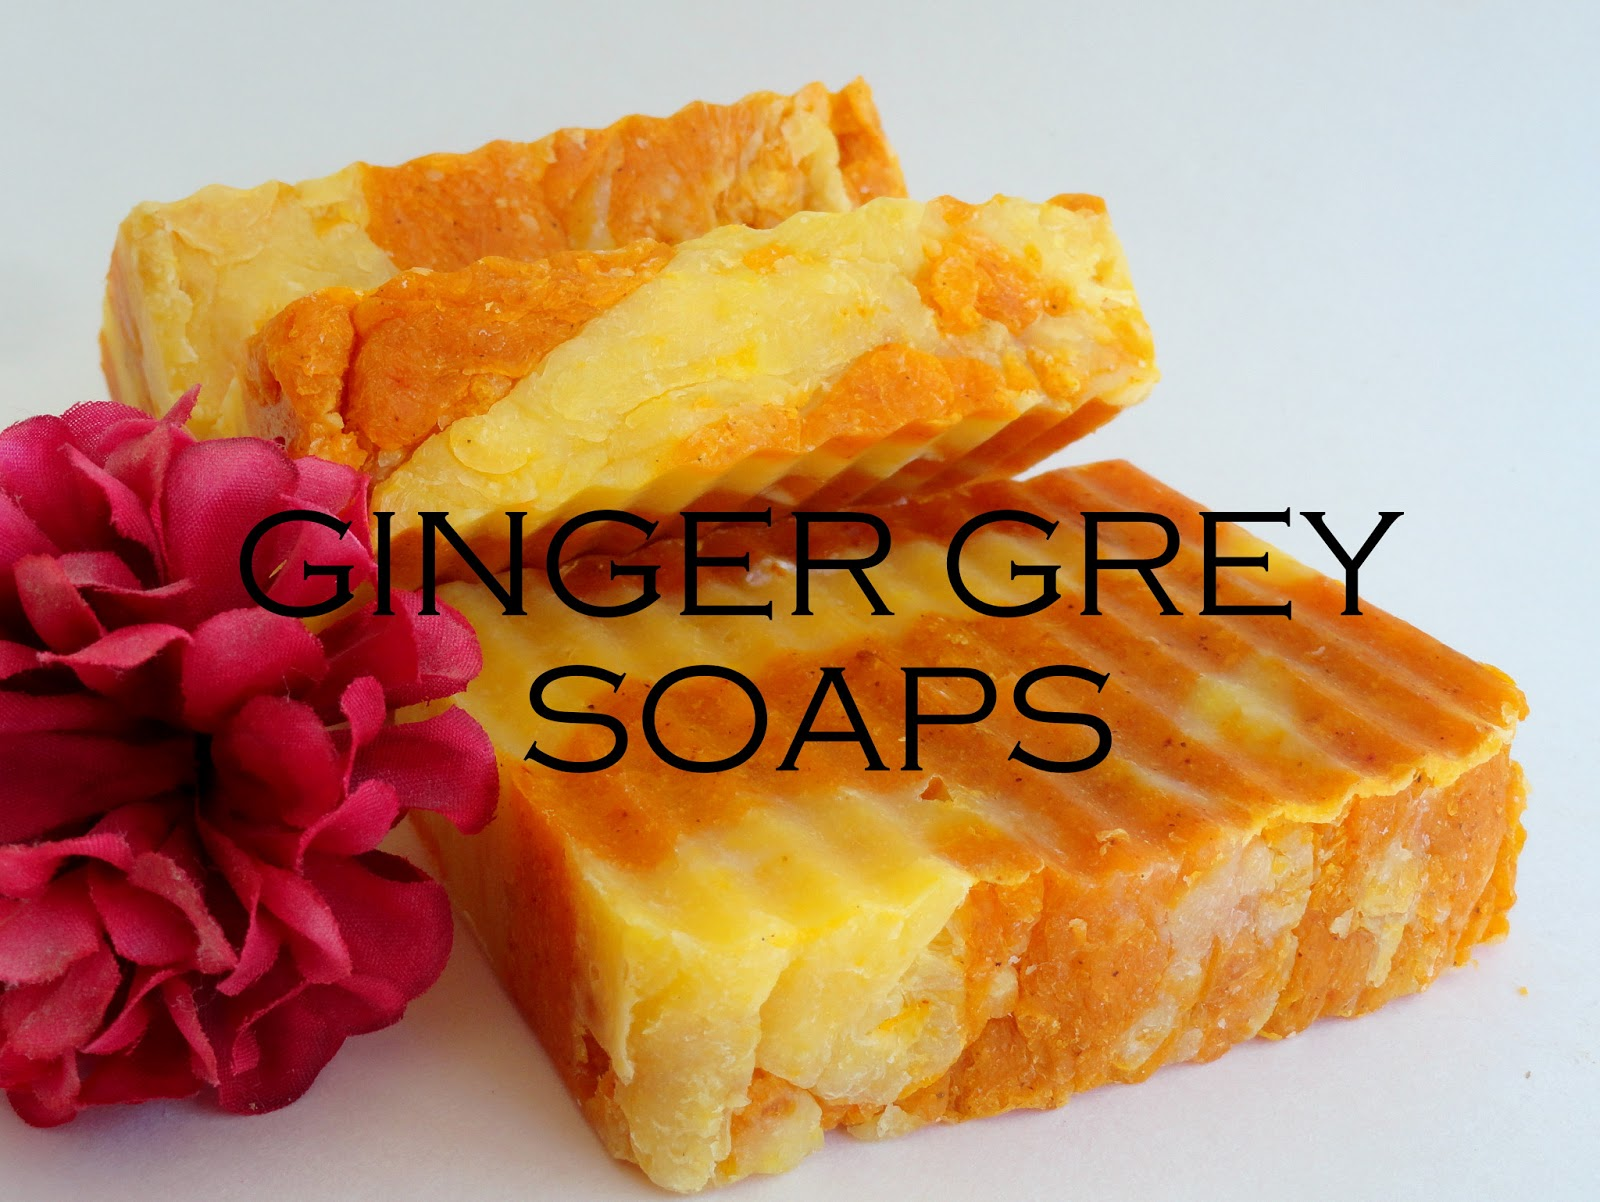 Watch How to Make Handmade Soap video